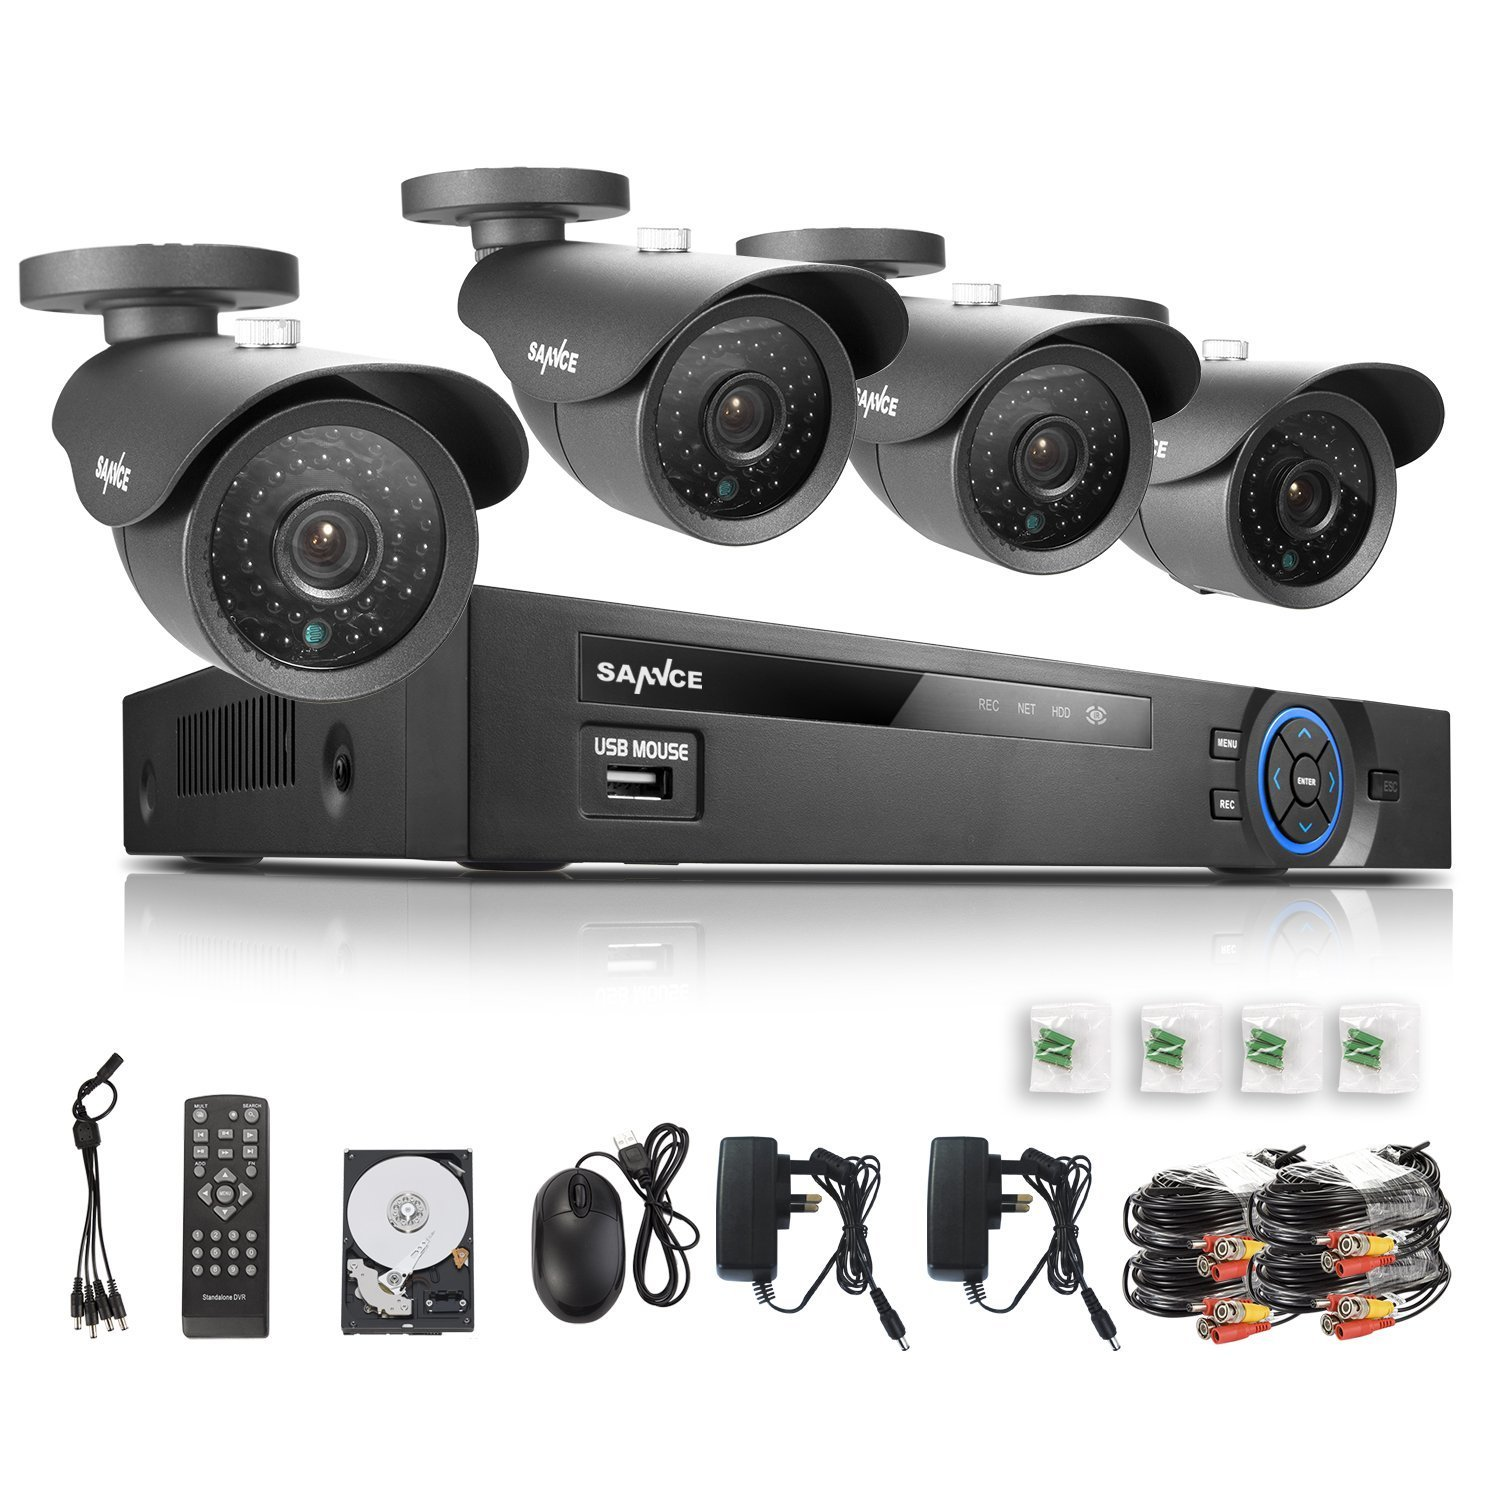 How to Buy a CCTV Security Camera System How to Buy a CCTV Security Camera System new picture